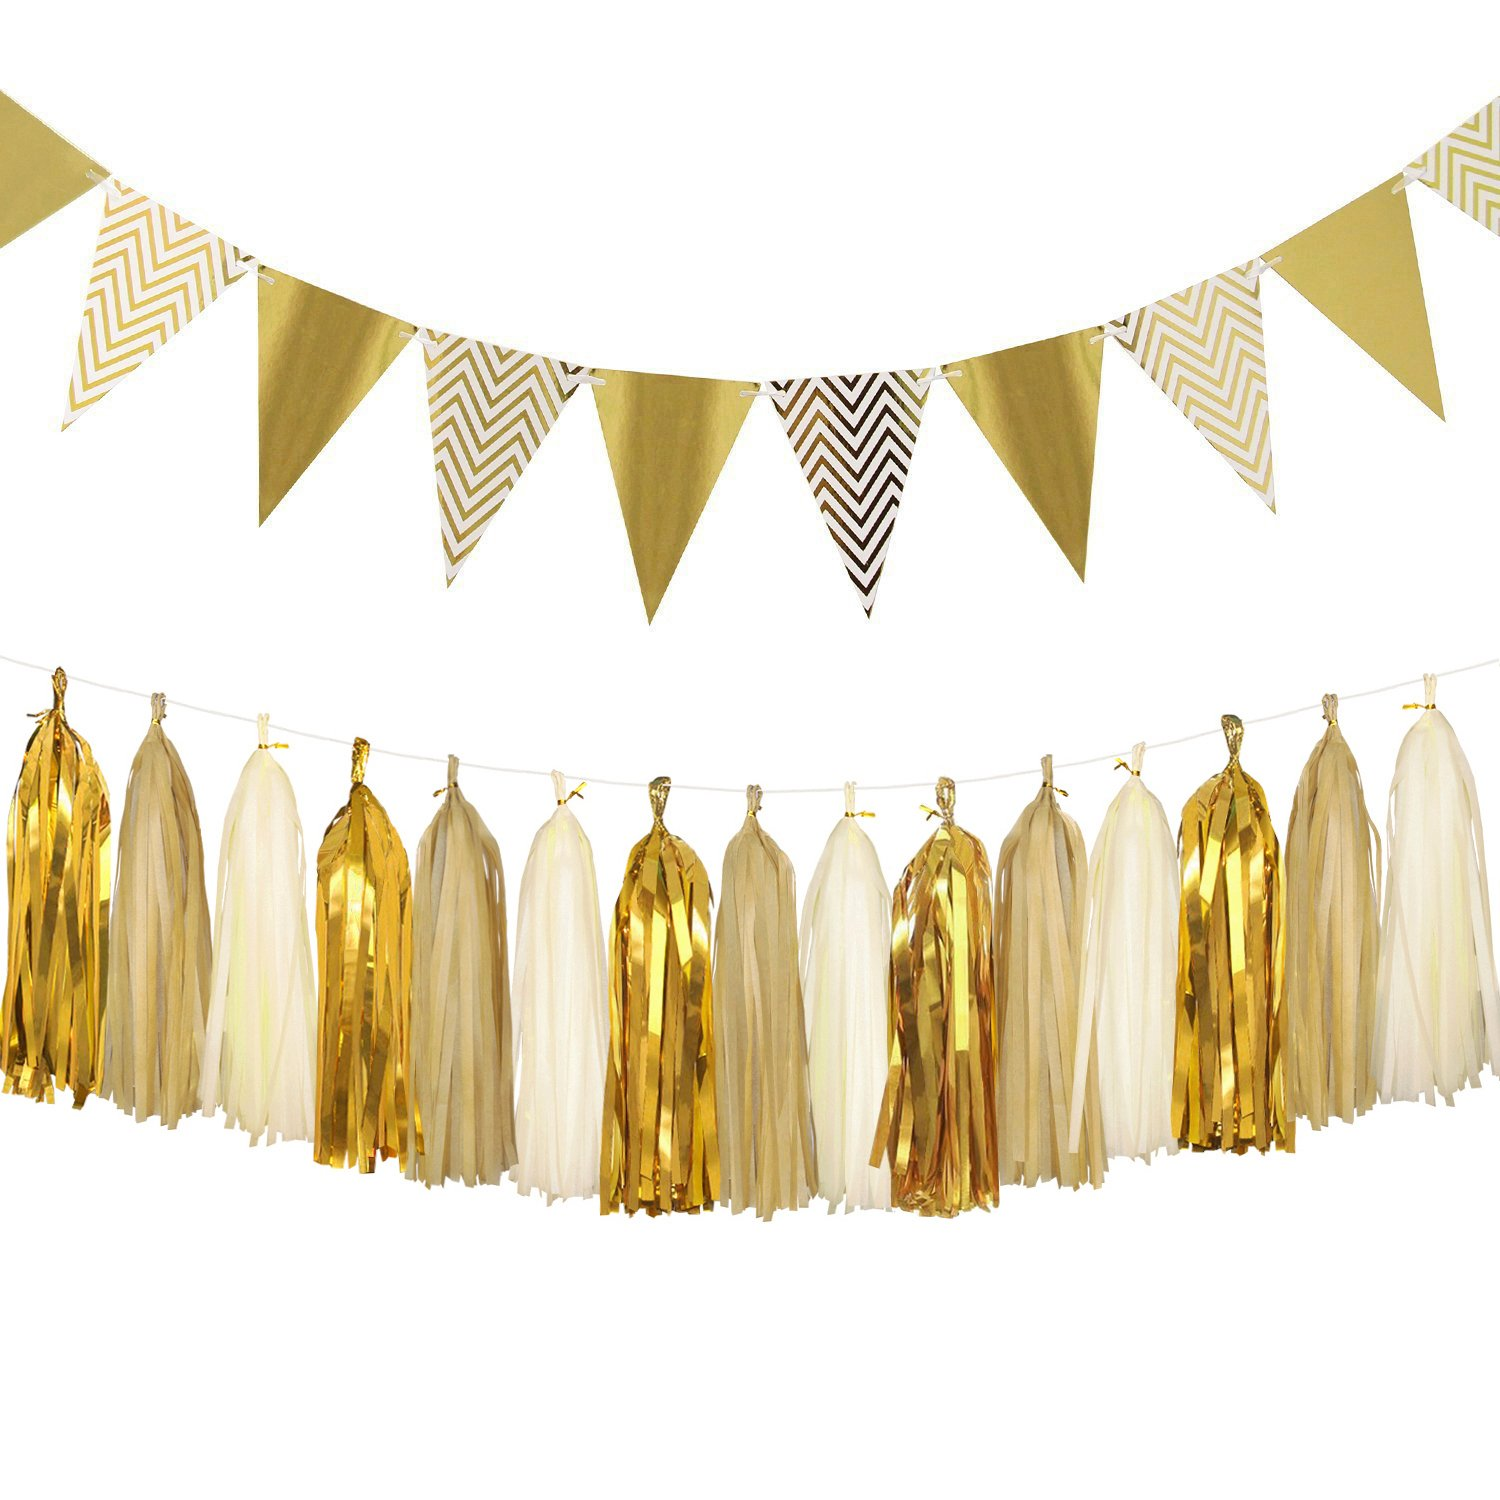 Sparkly Paper Pennant Banner Triangle Flags Bunting 8.2 Feet and Tissue Paper Tassels Garland 15 pcs for Baby Shower, Birthday Party Wall Decorations, Metallic Gold Aonor